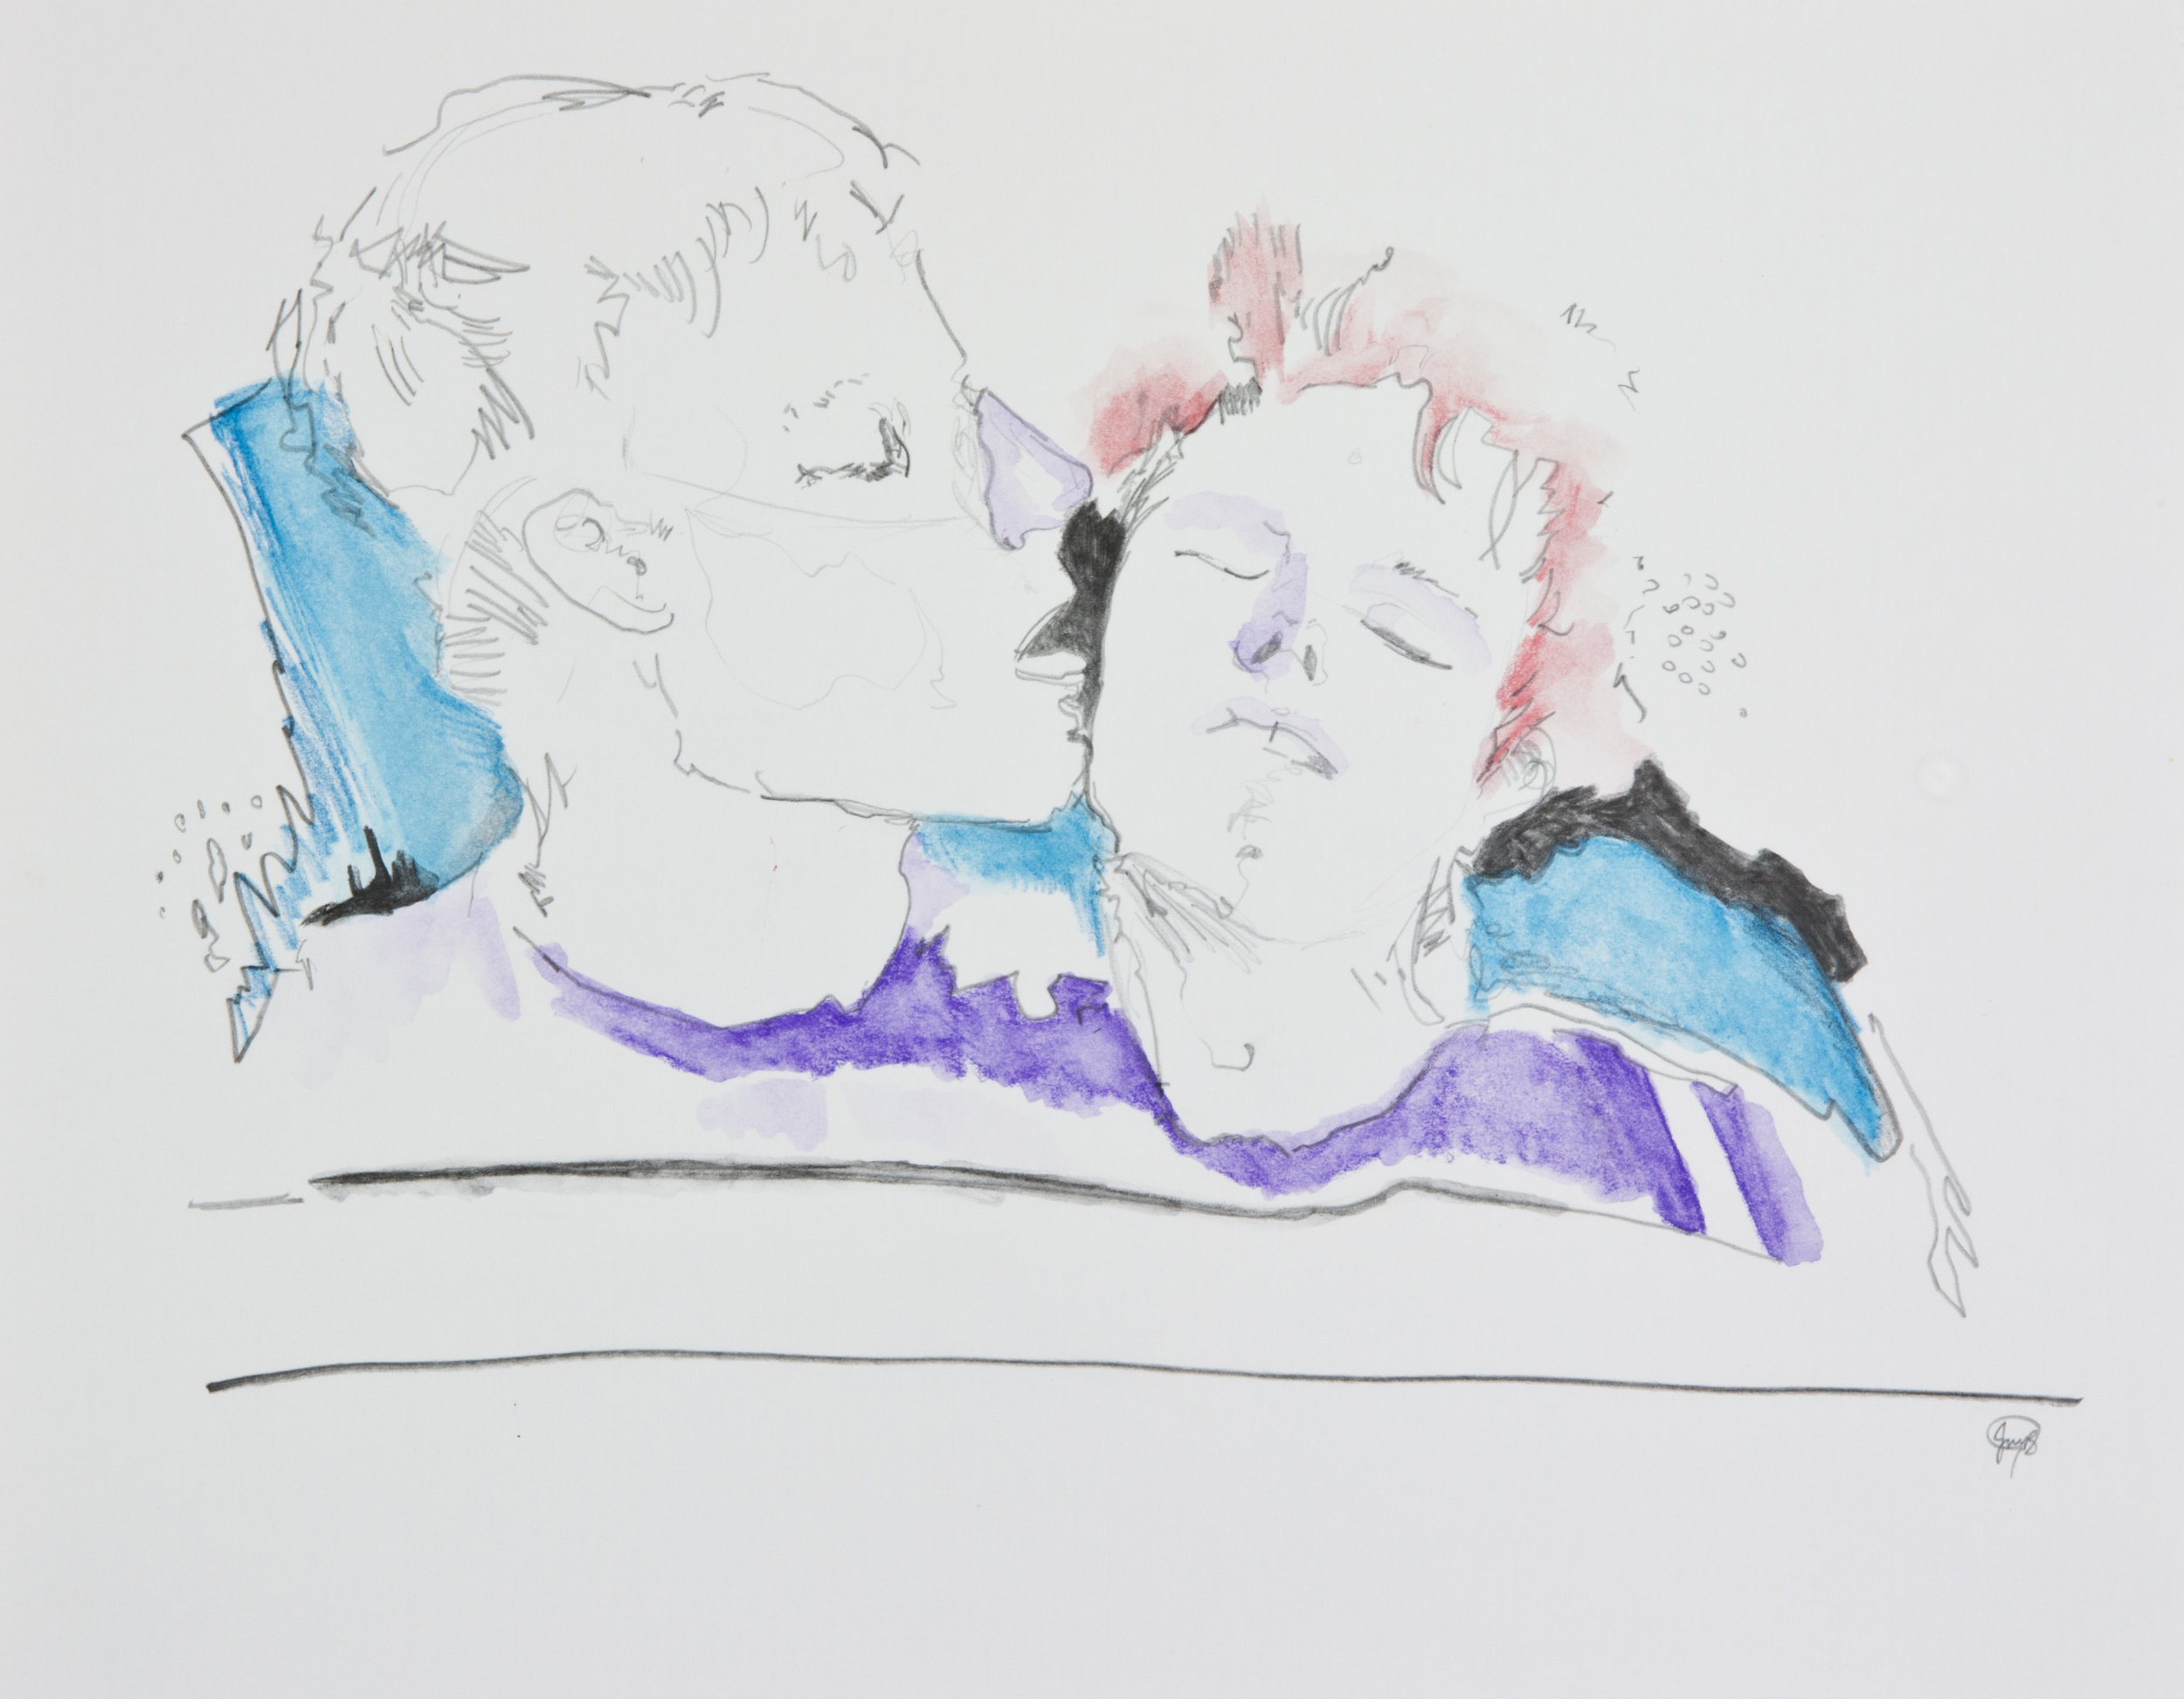 Uncomfortable Kisses, 2013, graphite, crayon and watercolor pencil on paper, 11x14 inches